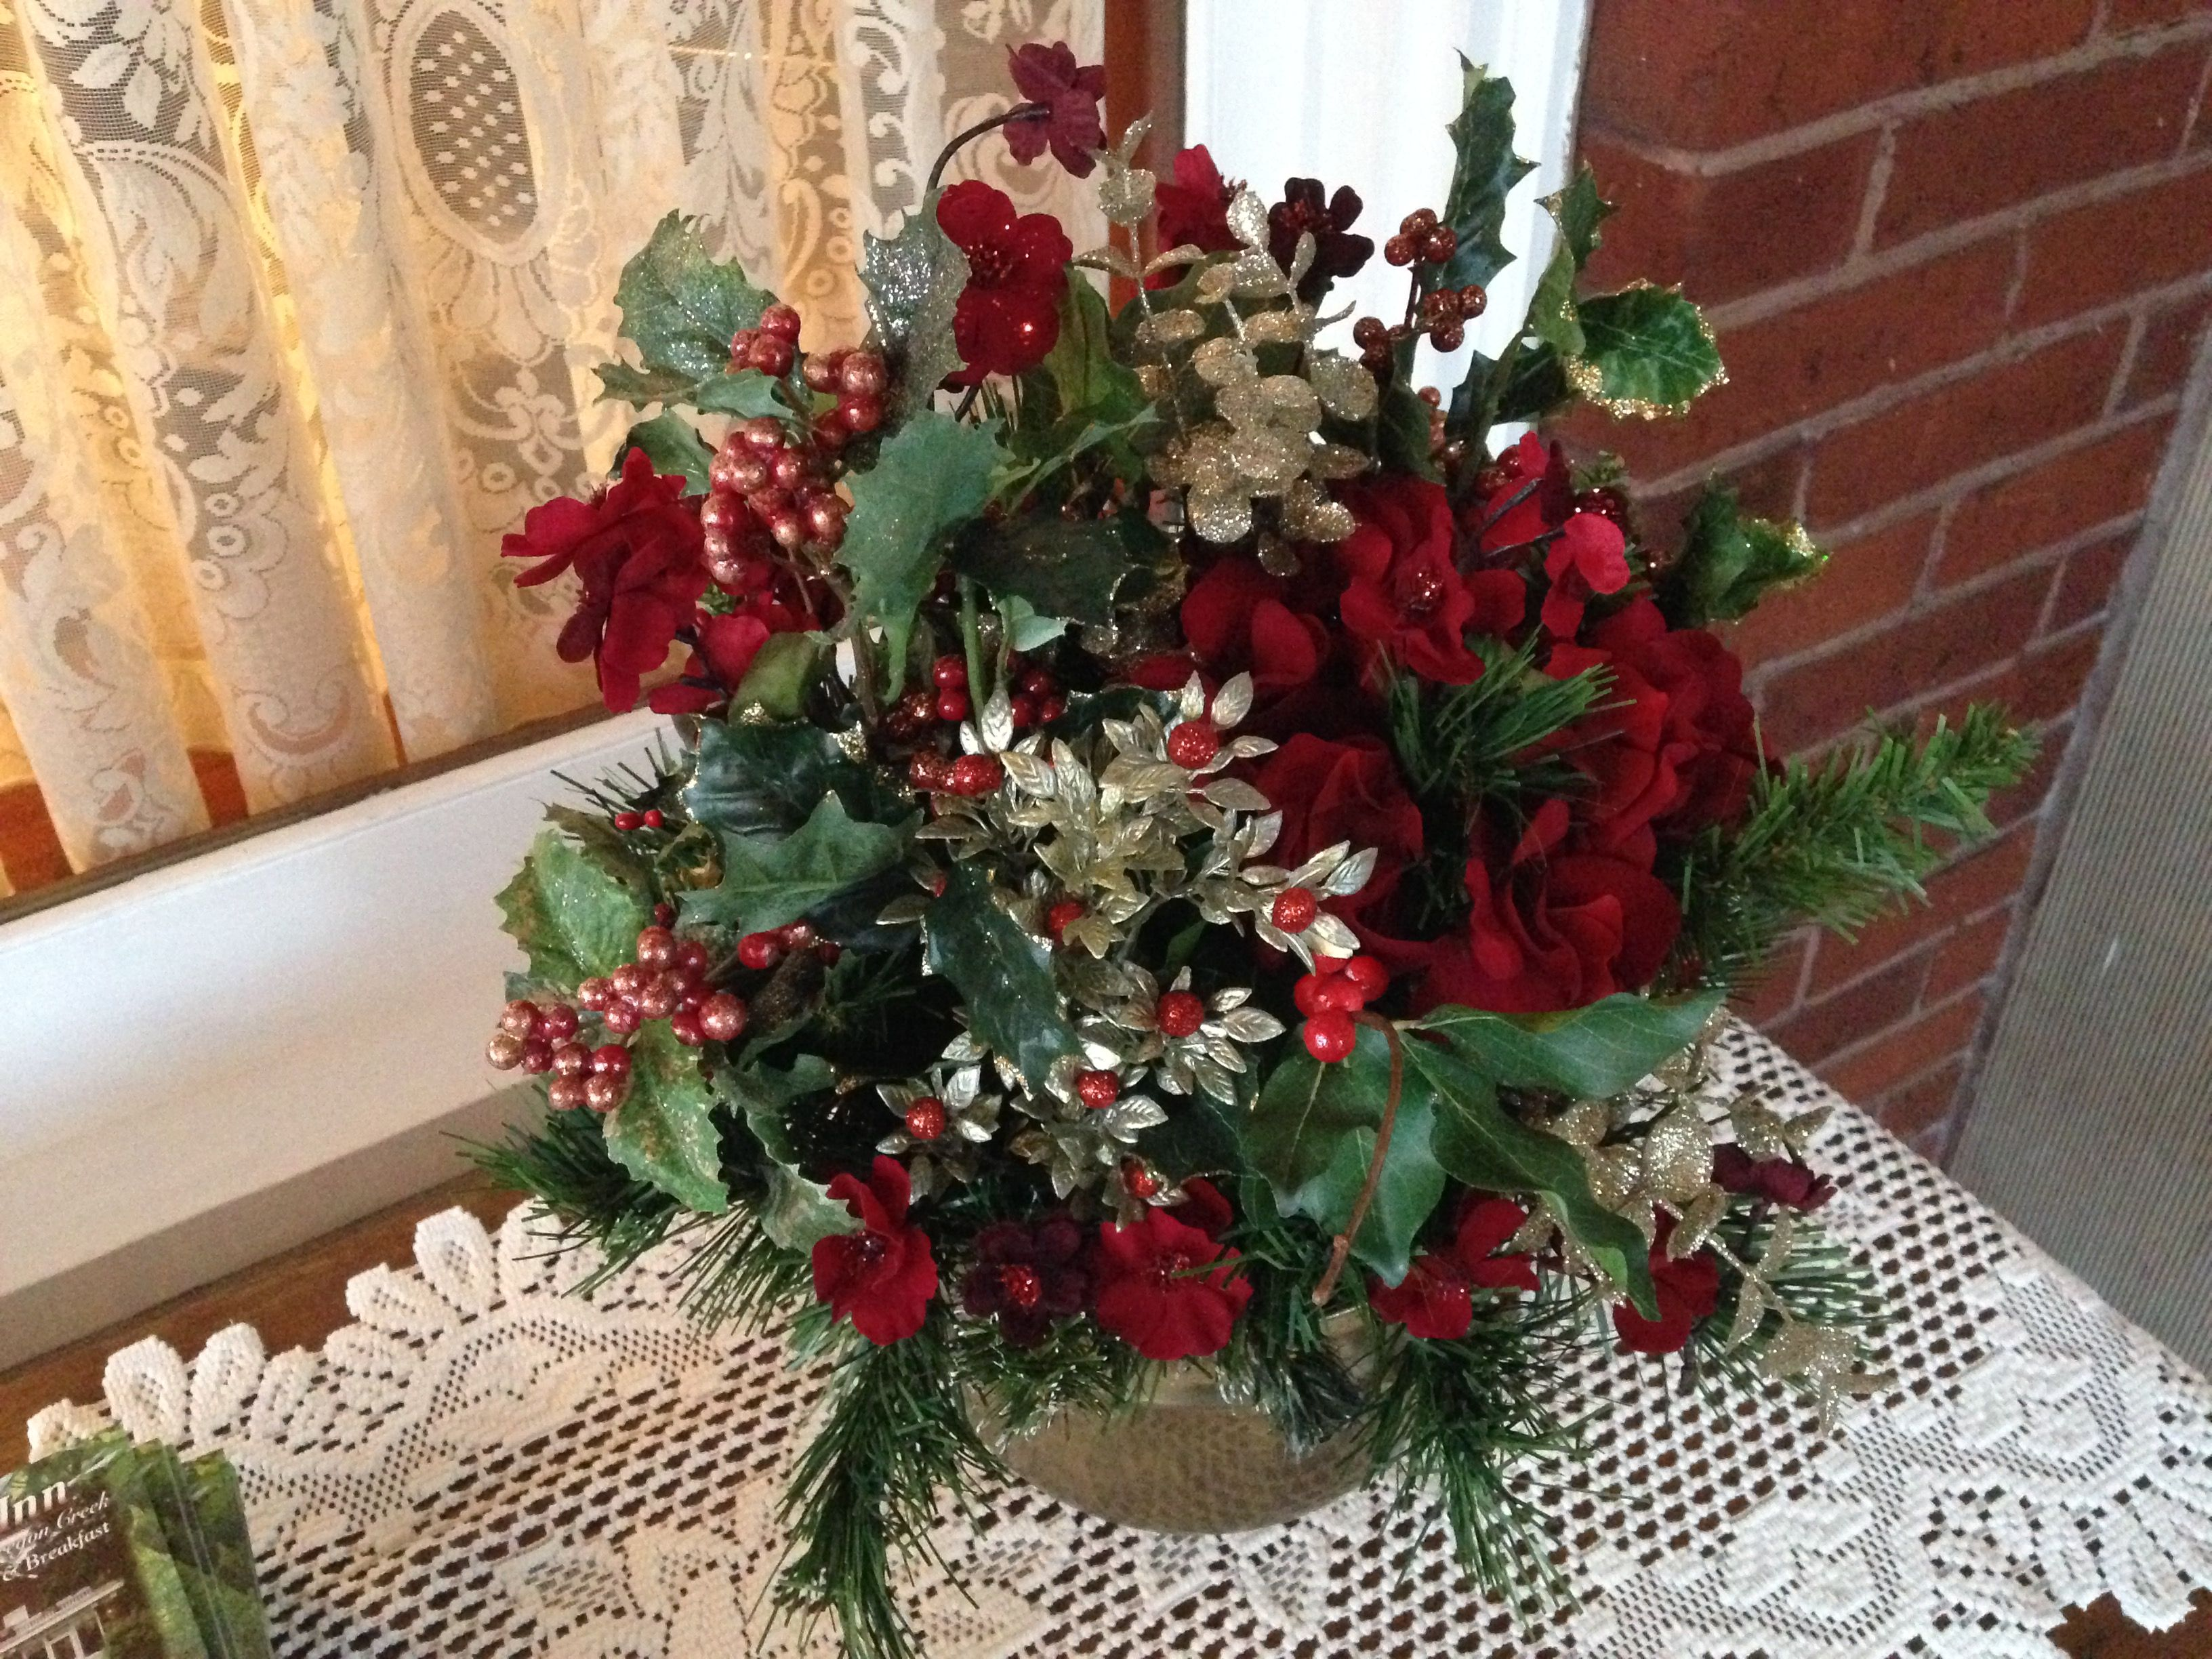 Innkeeper Joy put together this Christmas bouquet with